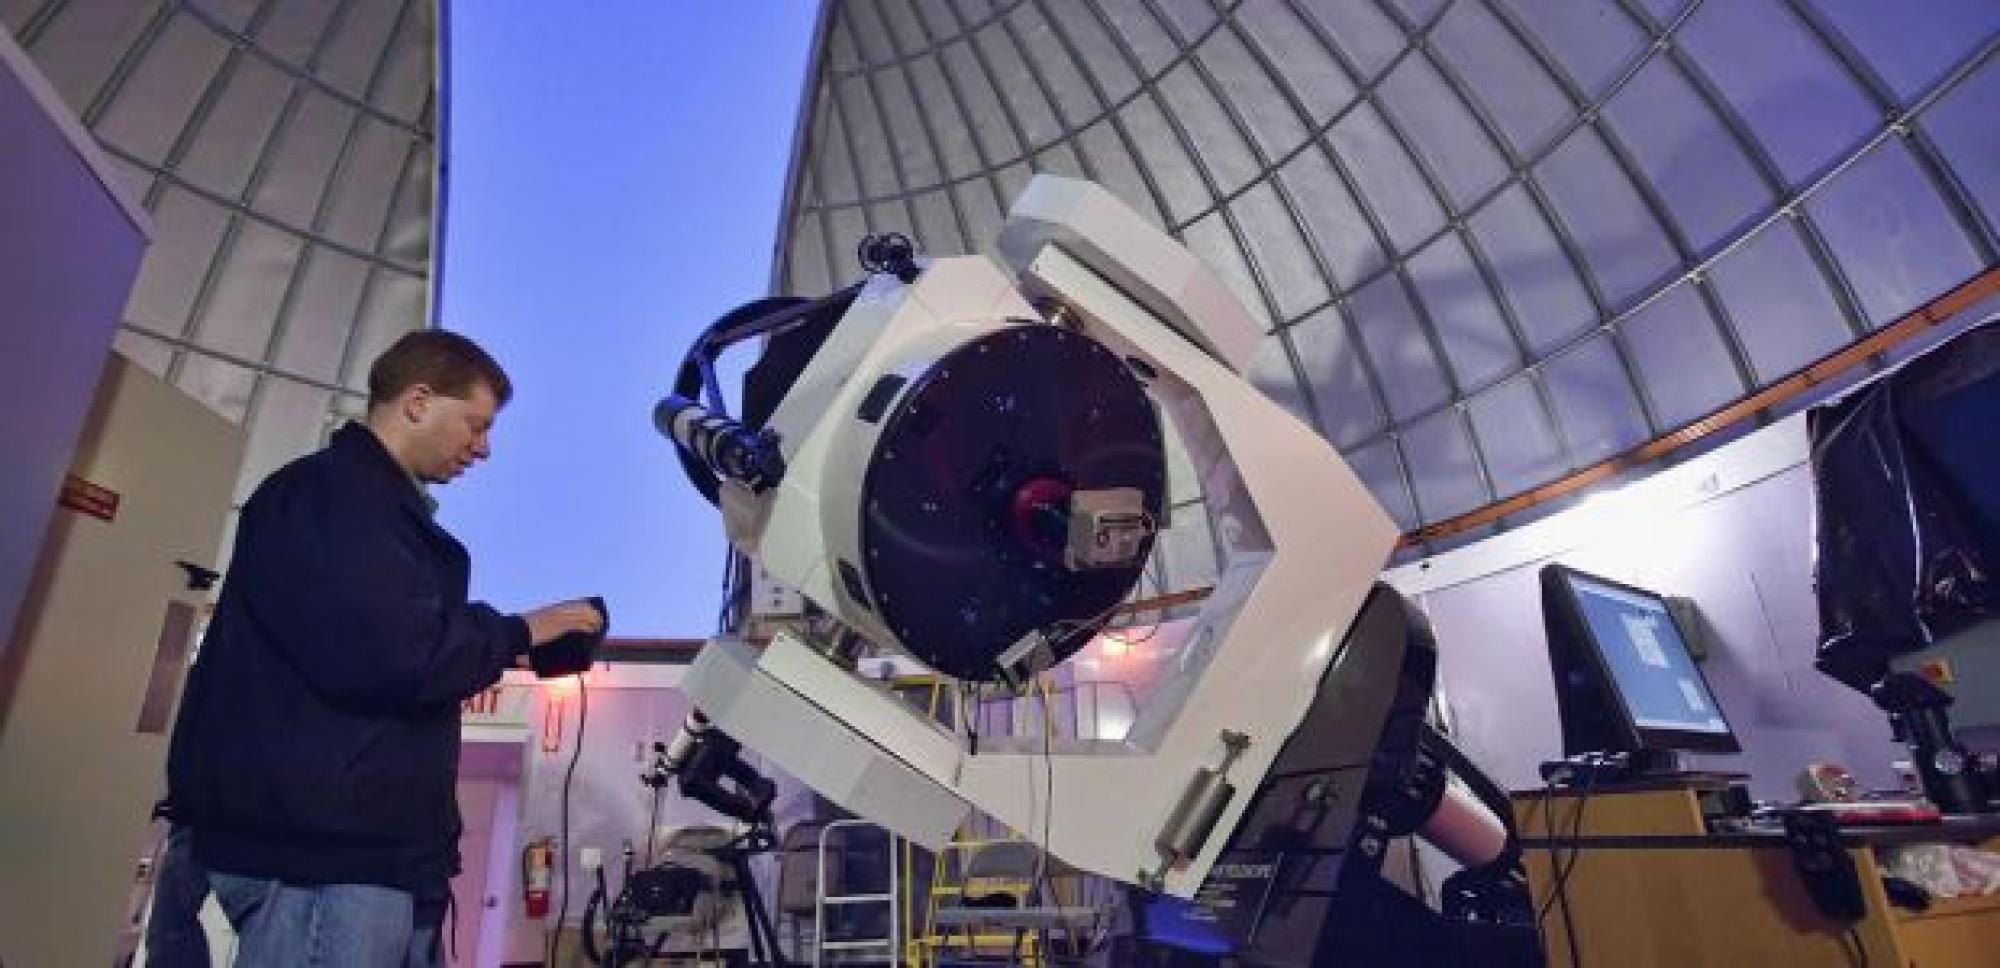 Adam Block adjusting the Schulmann Telescope at the Mt. Lemmon SkyCenter, with which he found the supernova.